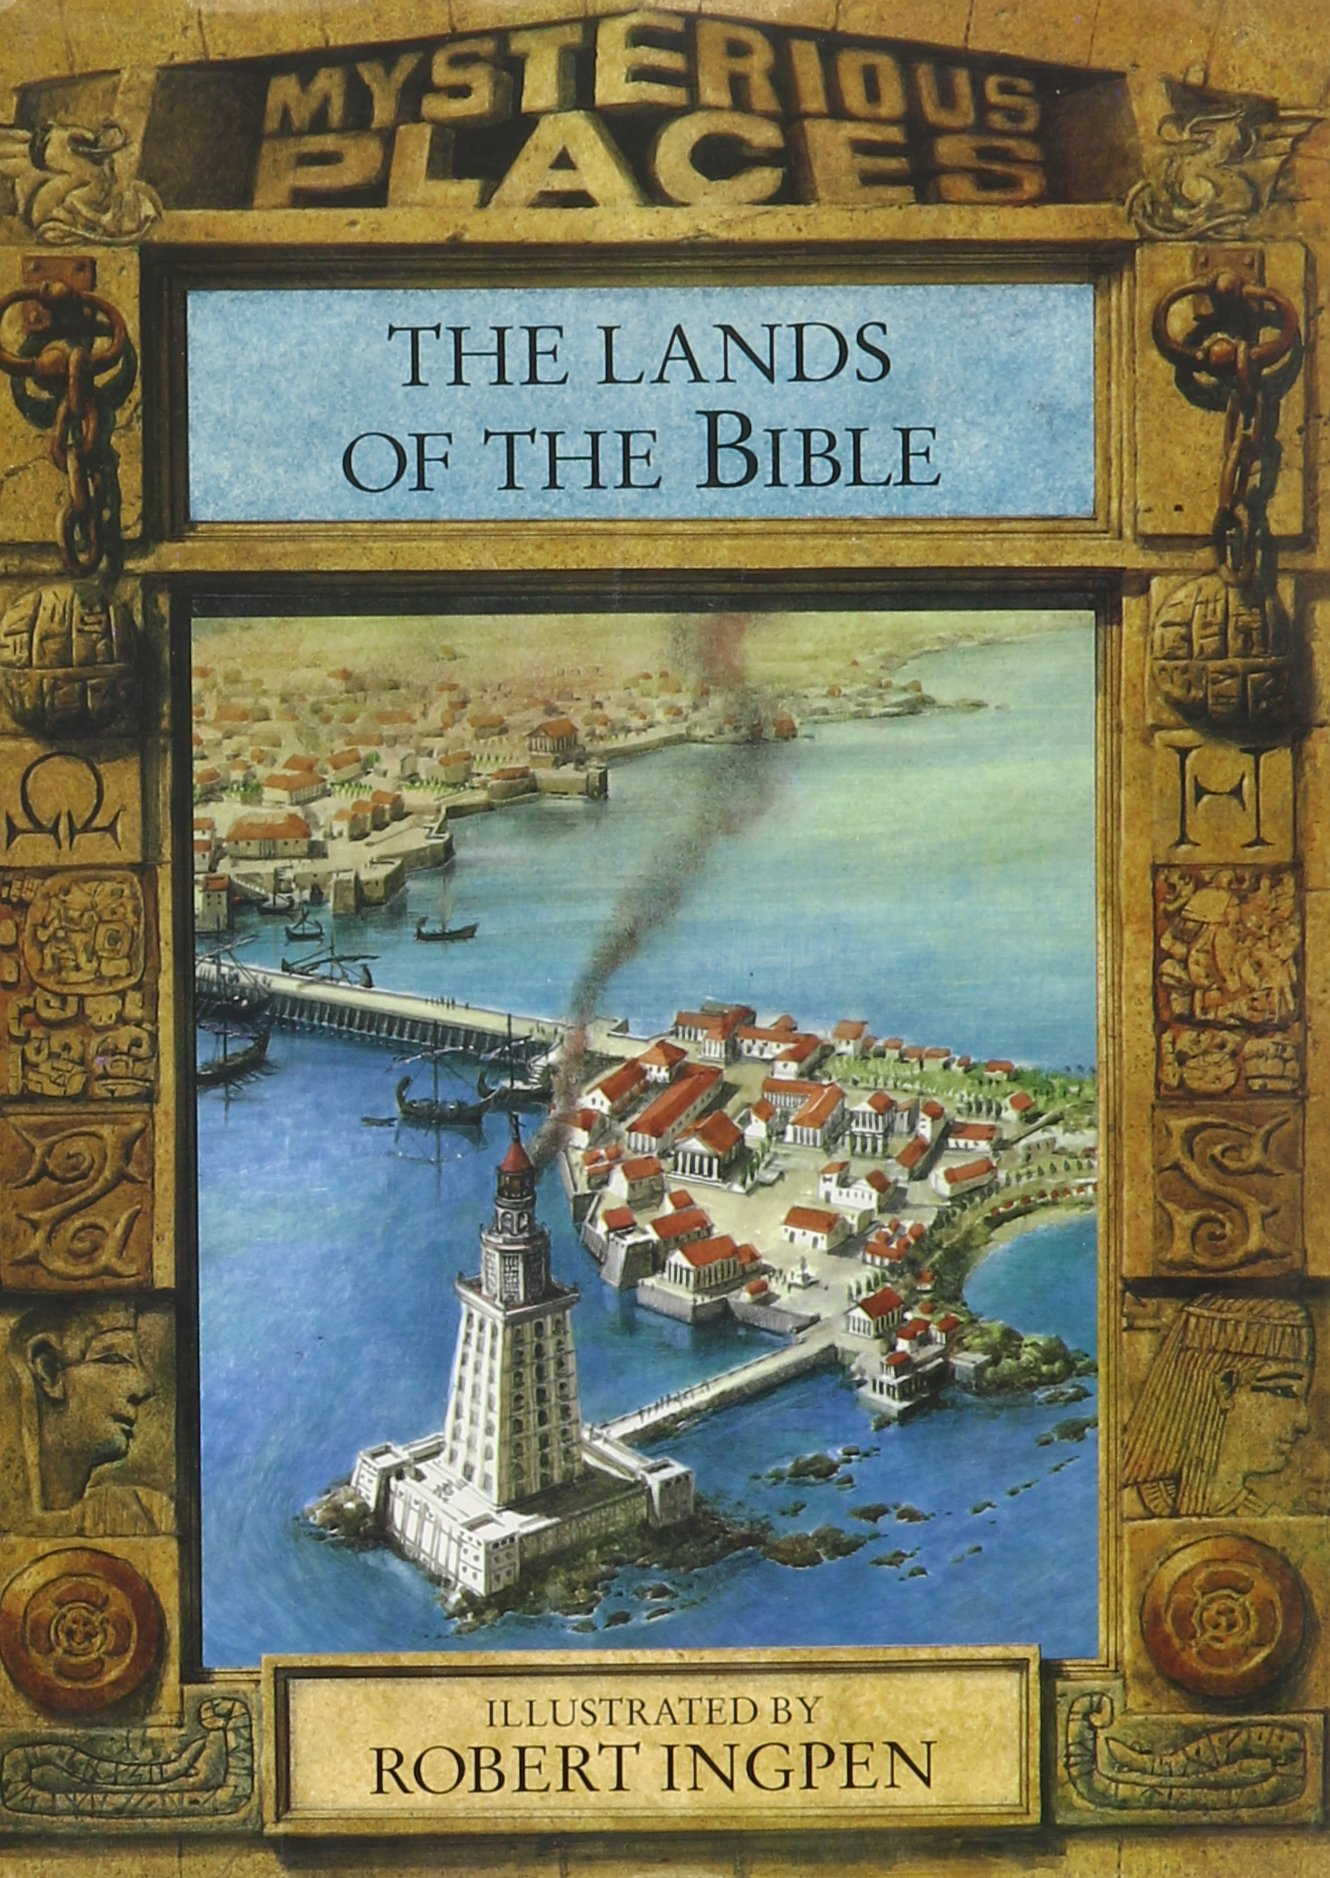 The Lands of the Bible (Mysterious Places) by Chelsea House Pub (Image #1)